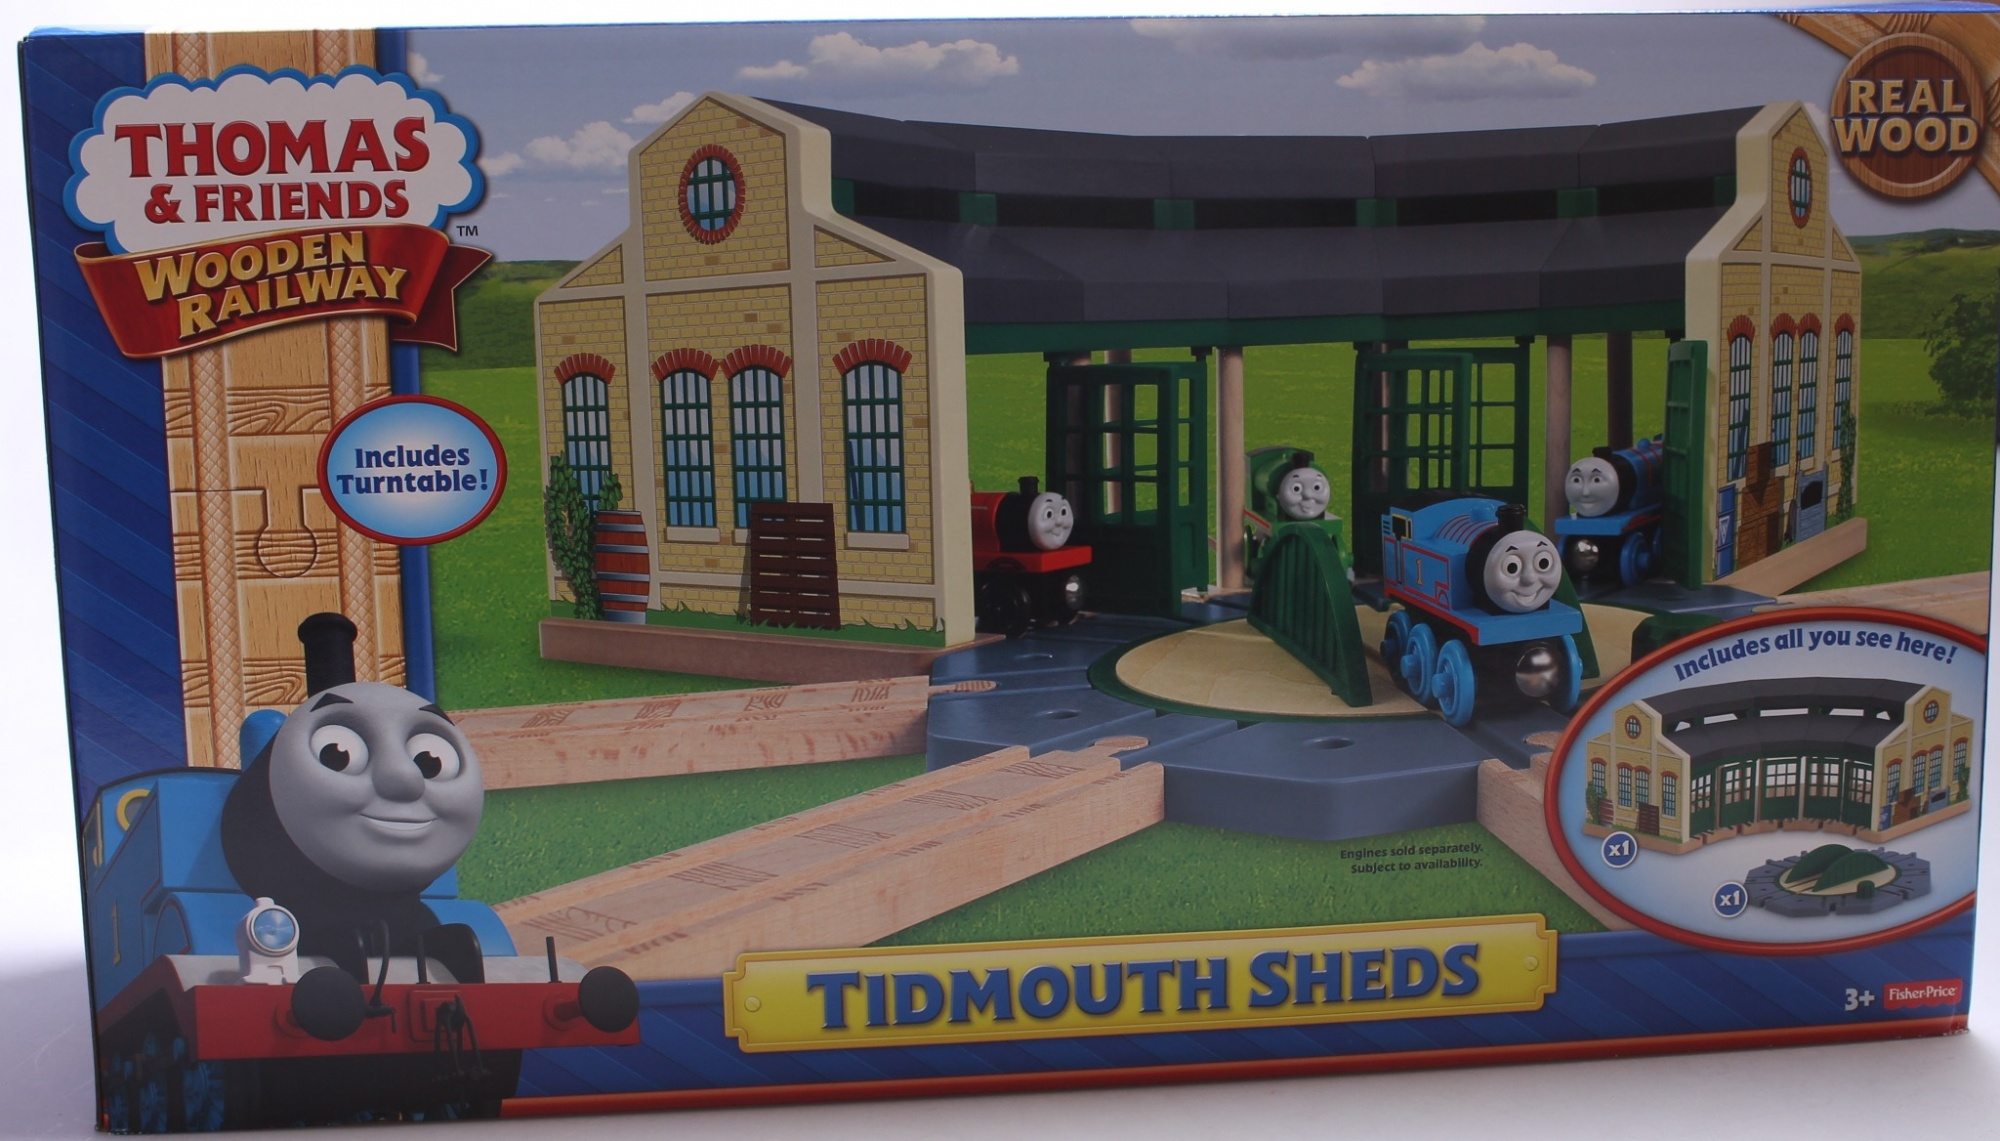 Fabulous Thomas Friends Wooden Railway Tidmouth Sheds Home Remodeling Inspirations Genioncuboardxyz